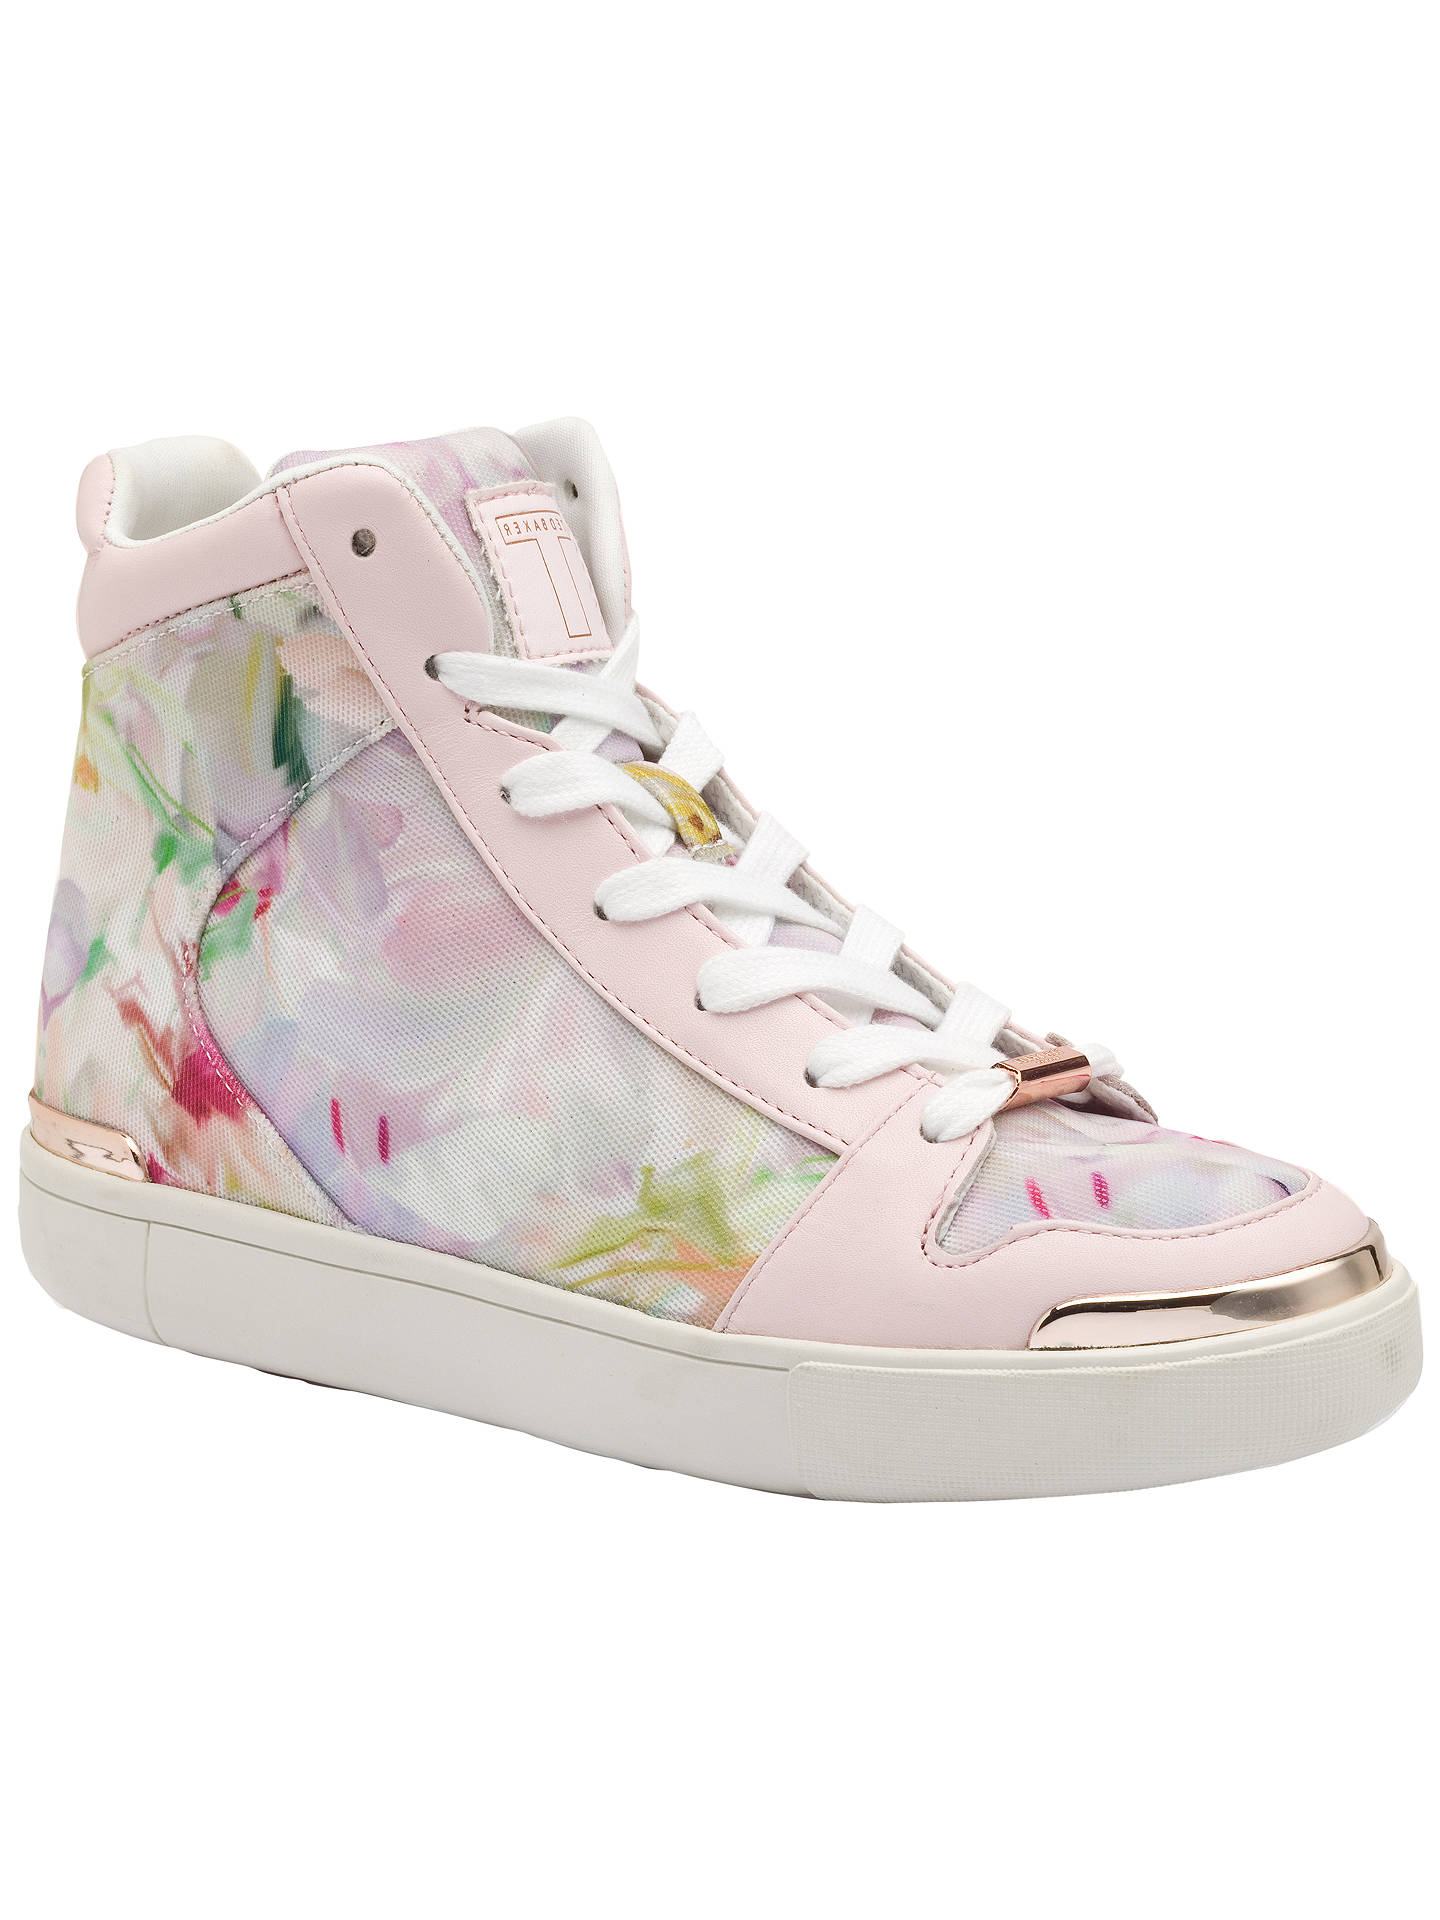 d86b8284e34 Buy Ted Baker Paryna High Top Flat Trainers, Blush Print, 4 Online at  johnlewis ...